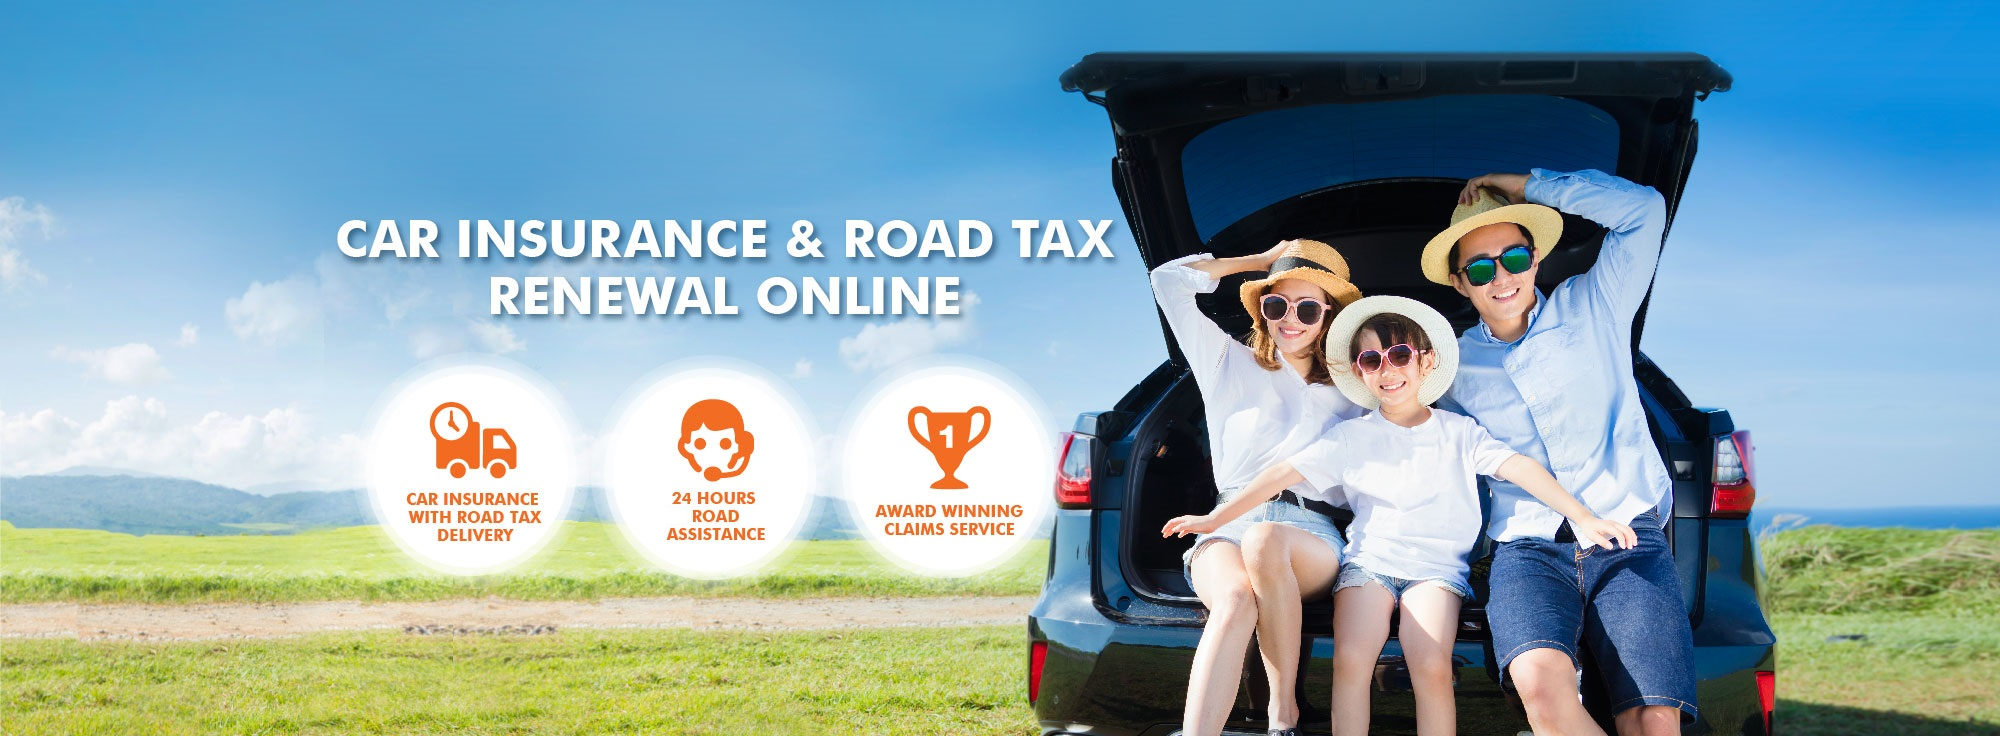 AIG Car Insurance and Road Tax Renewal Online | AIG Malaysia